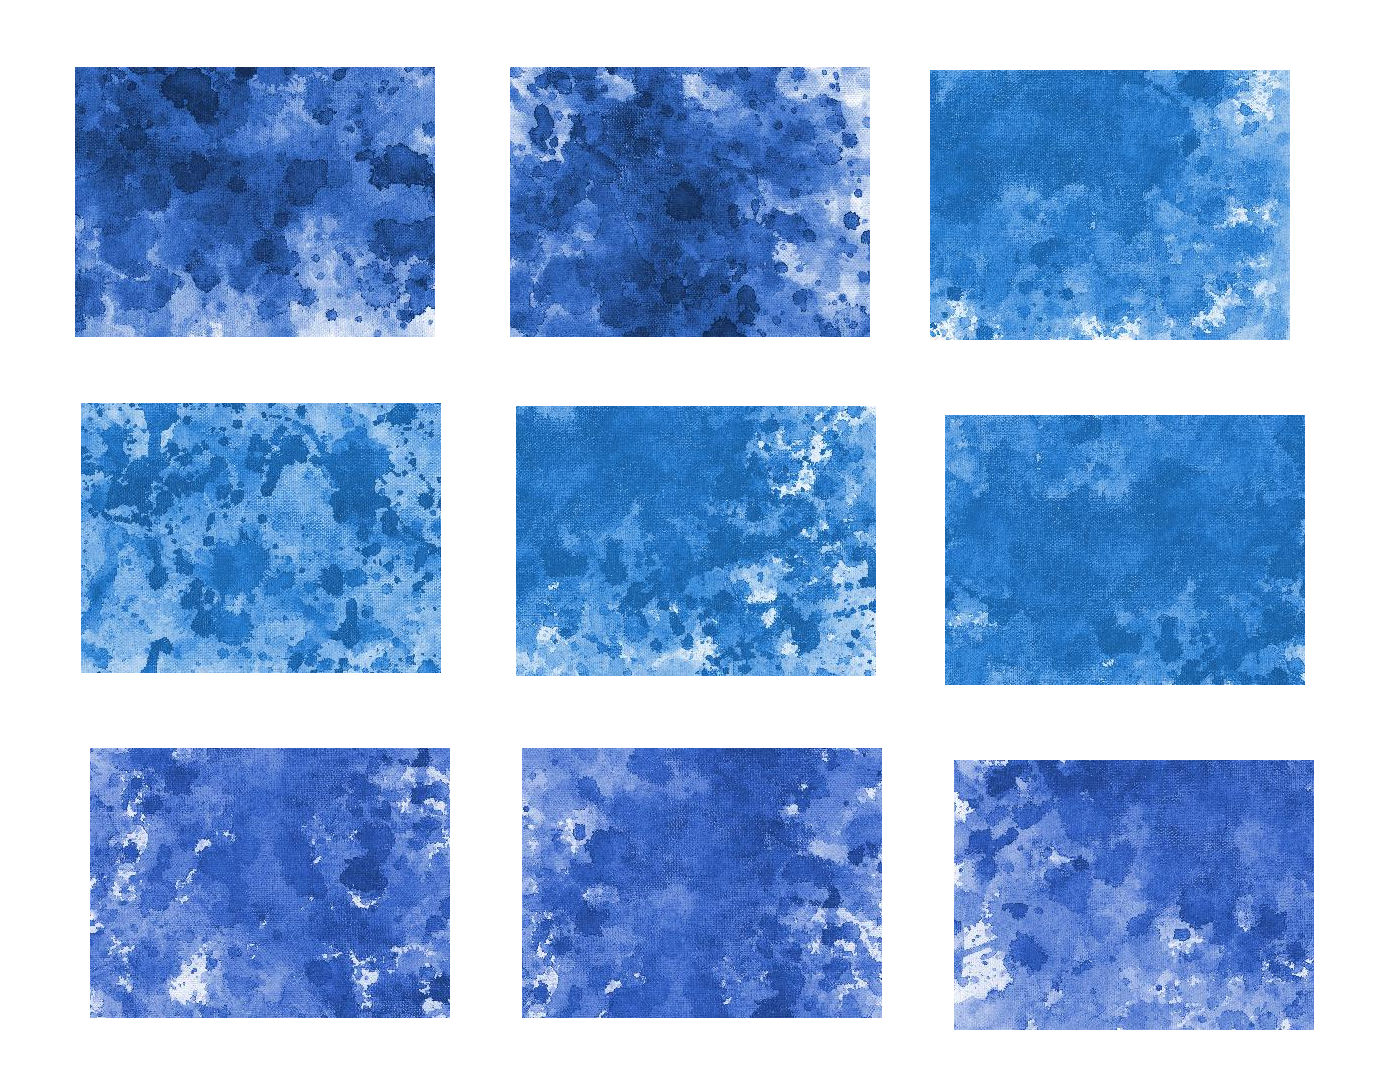 9-blue-watercolor-splash-on-canvas-background-cover.jpg